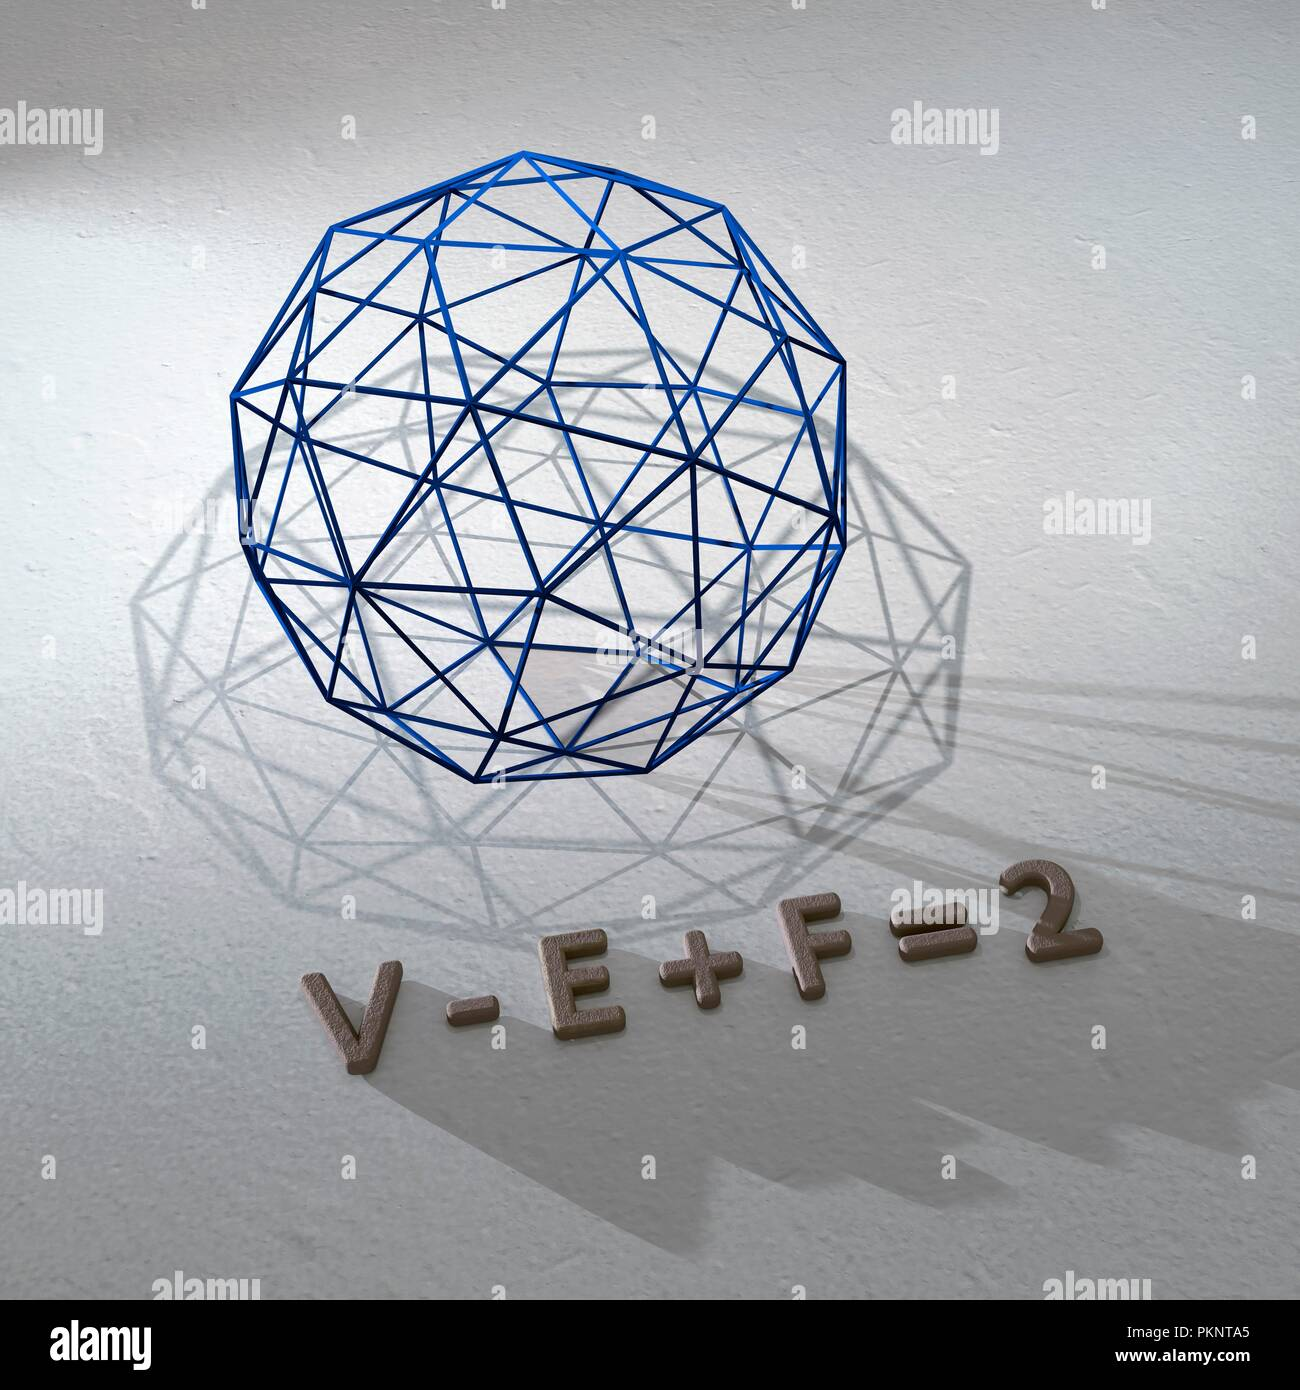 Euler's polyhedral formula. Euler's formula states that for any convex polyhedron, the number of vertices minus the number of edges plus the number of faces always equals two. - Stock Image